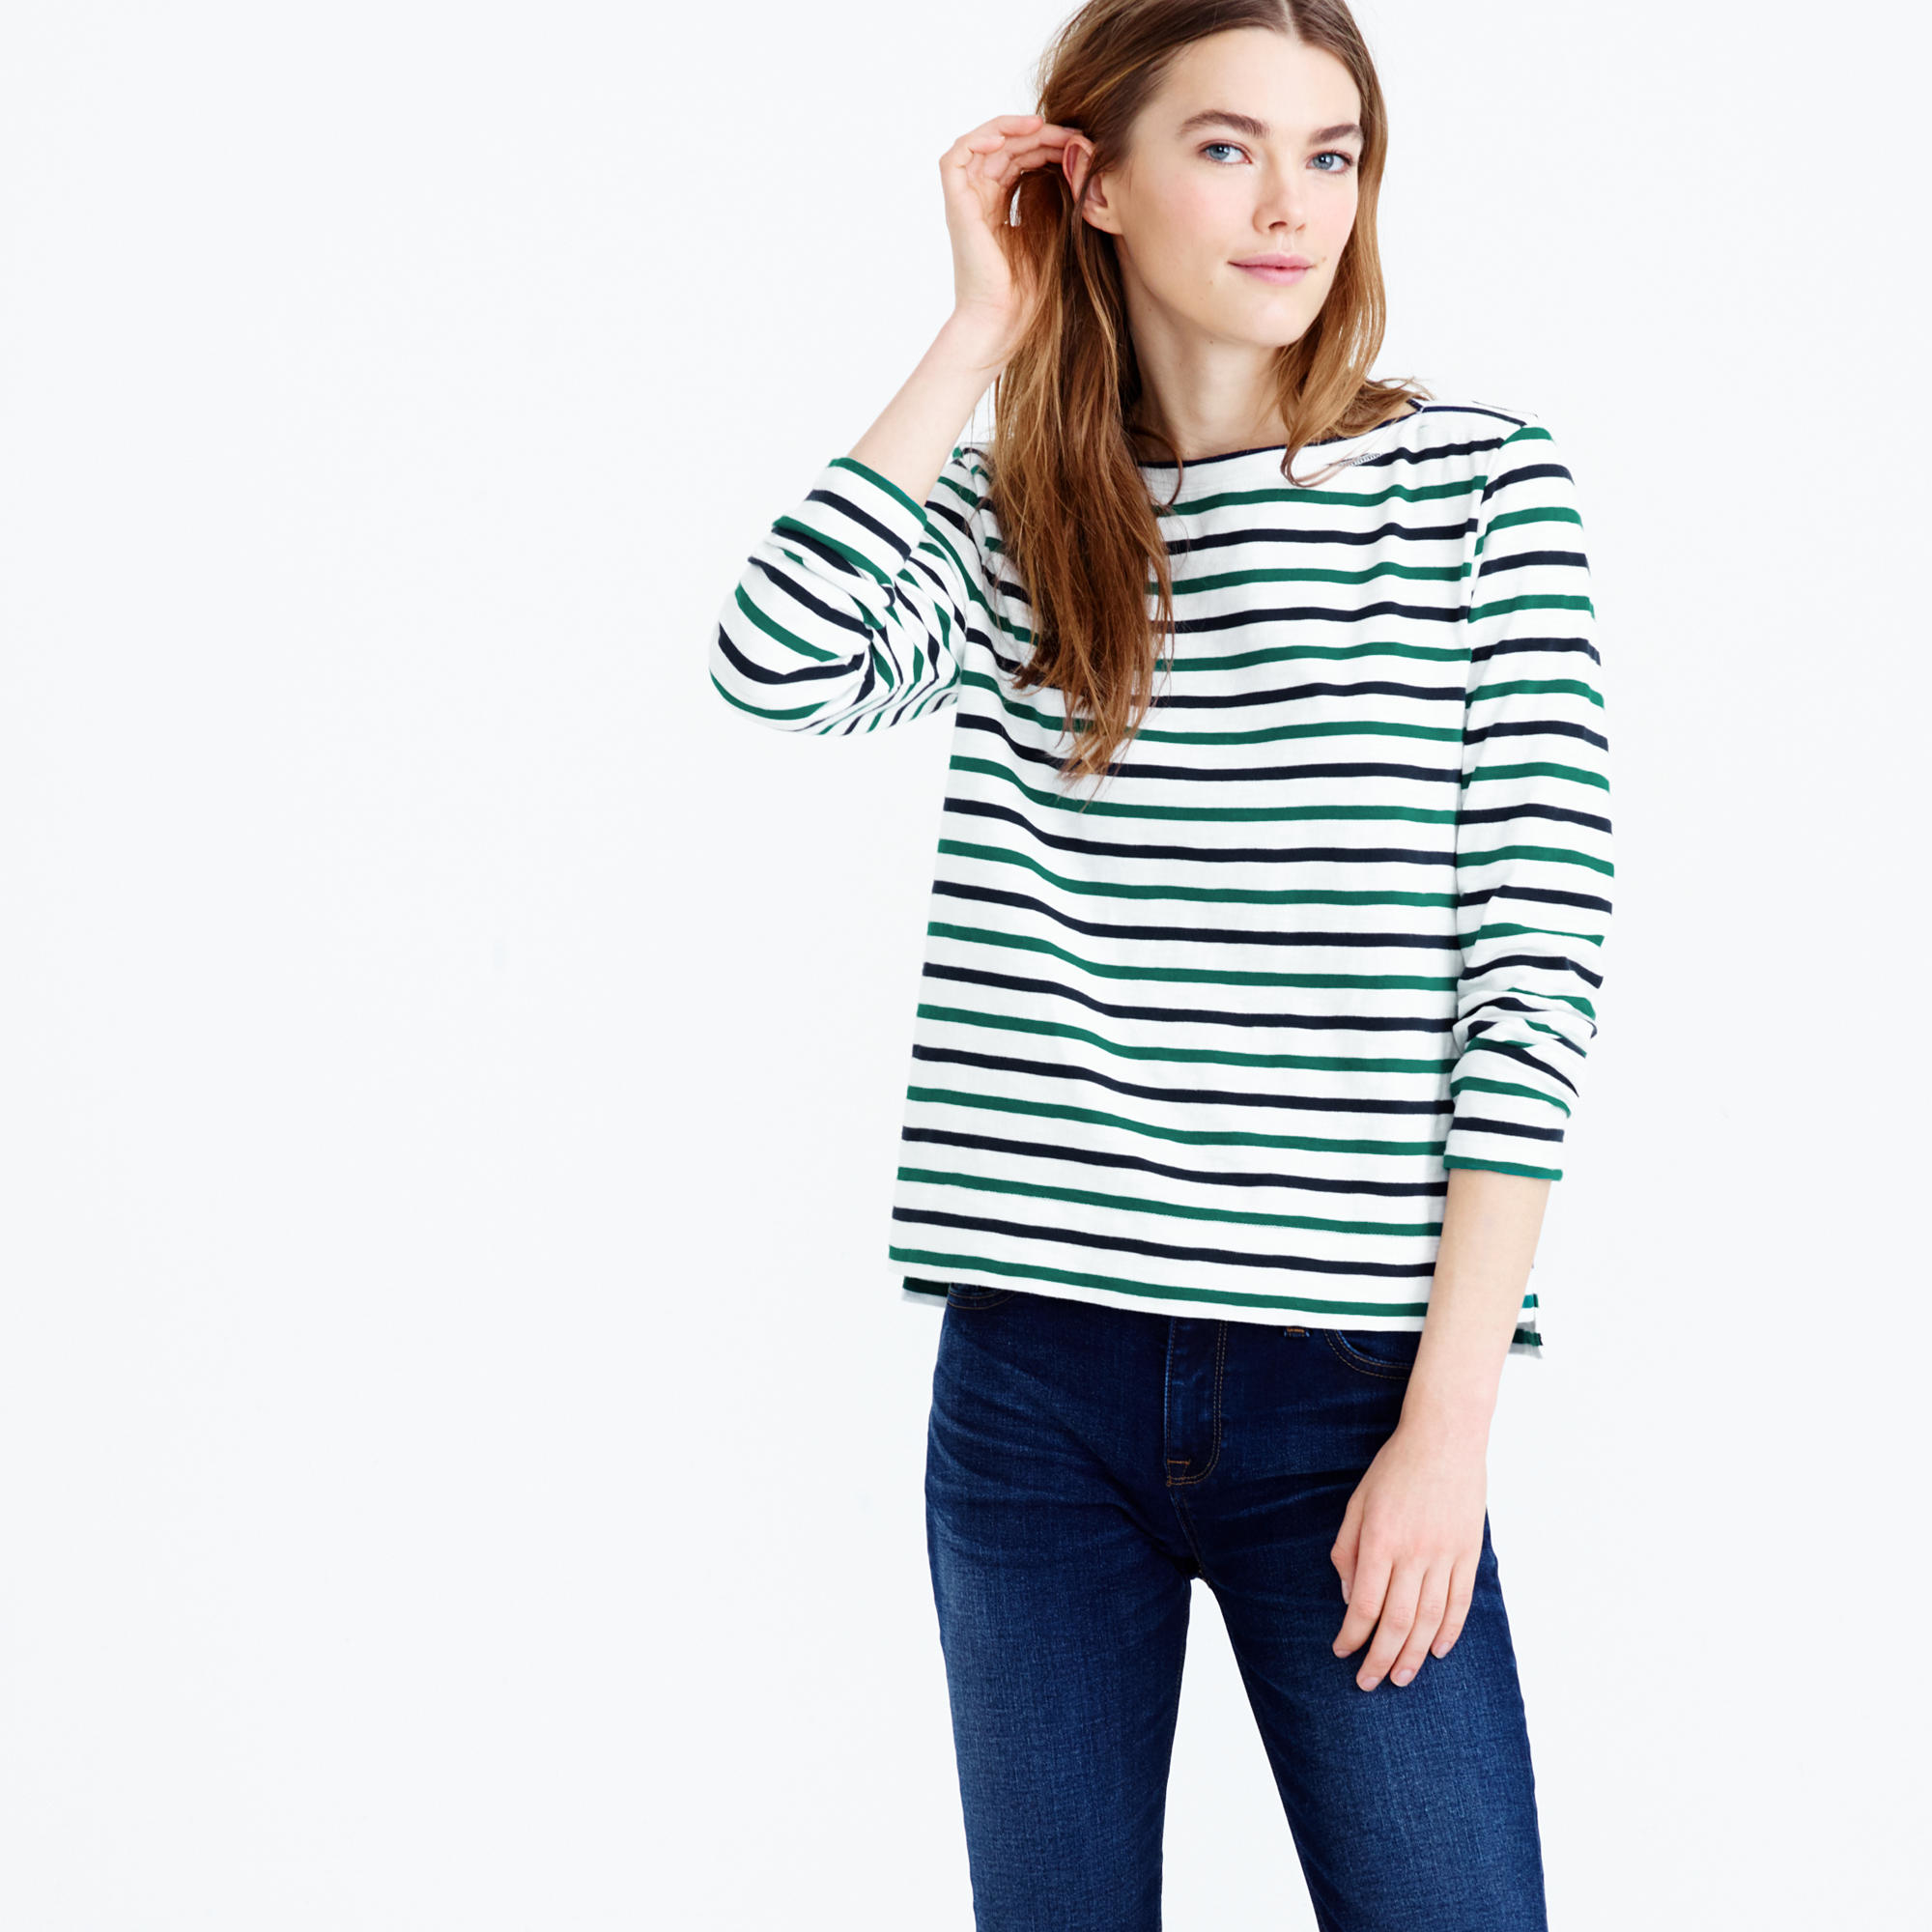 cf7672ae9a J.Crew Midweight Colorful Striped Boatneck T-shirt in White - Lyst